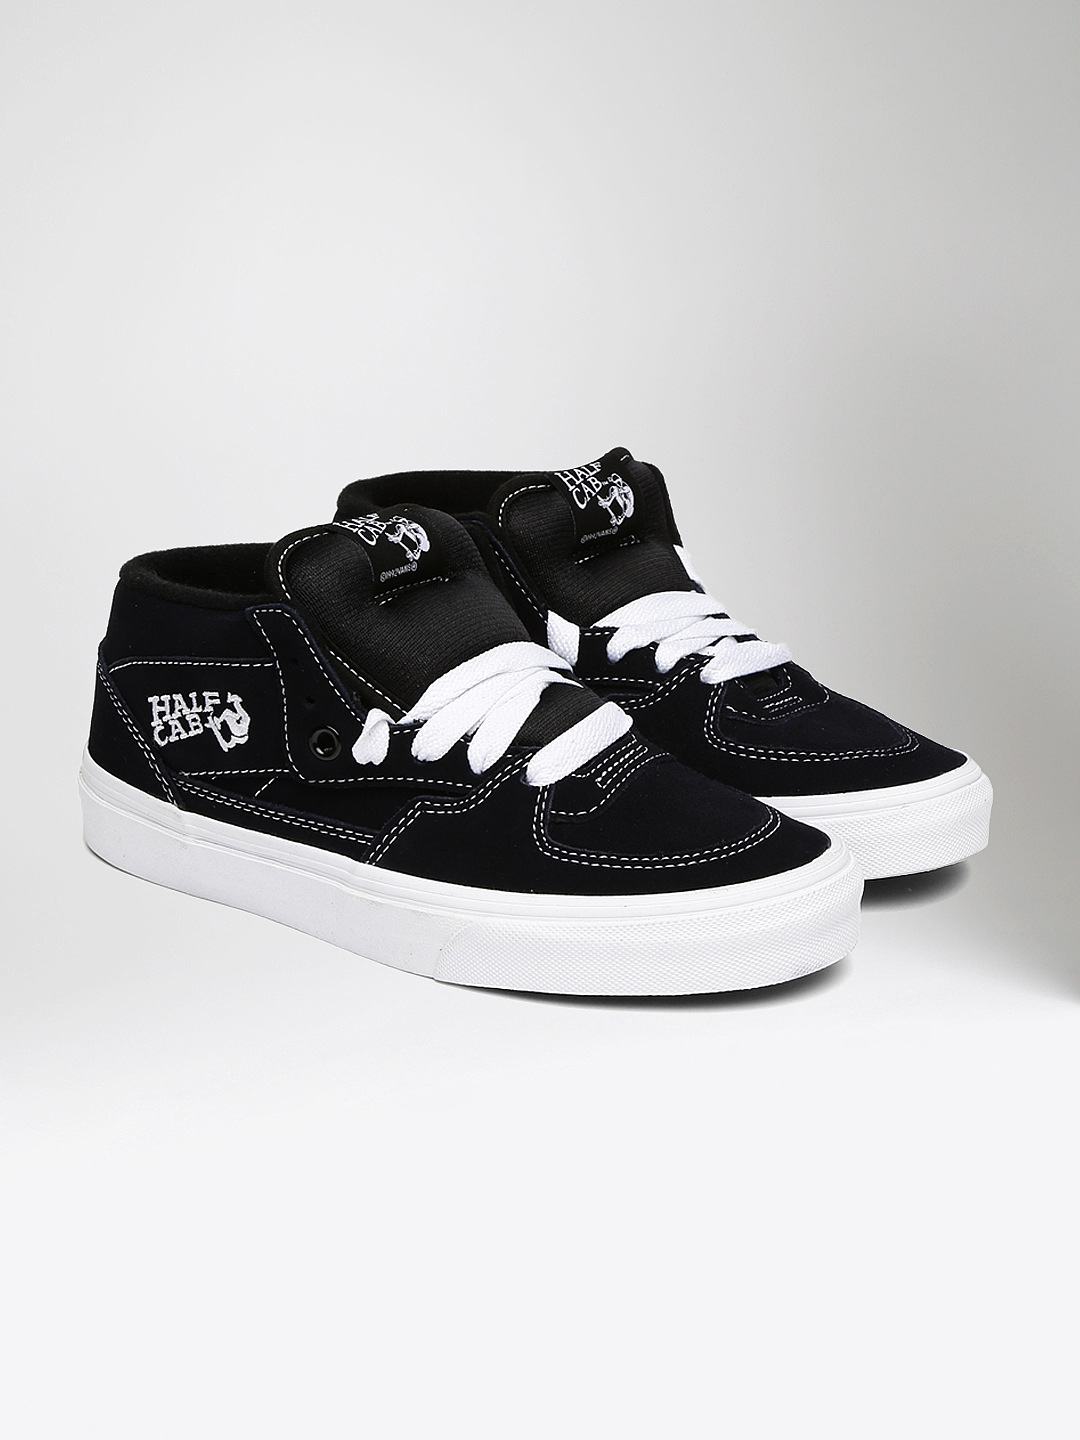 Buy Vans Unisex Half Cab Black Sneakers - Casual Shoes for Unisex ... f50ceea2bf